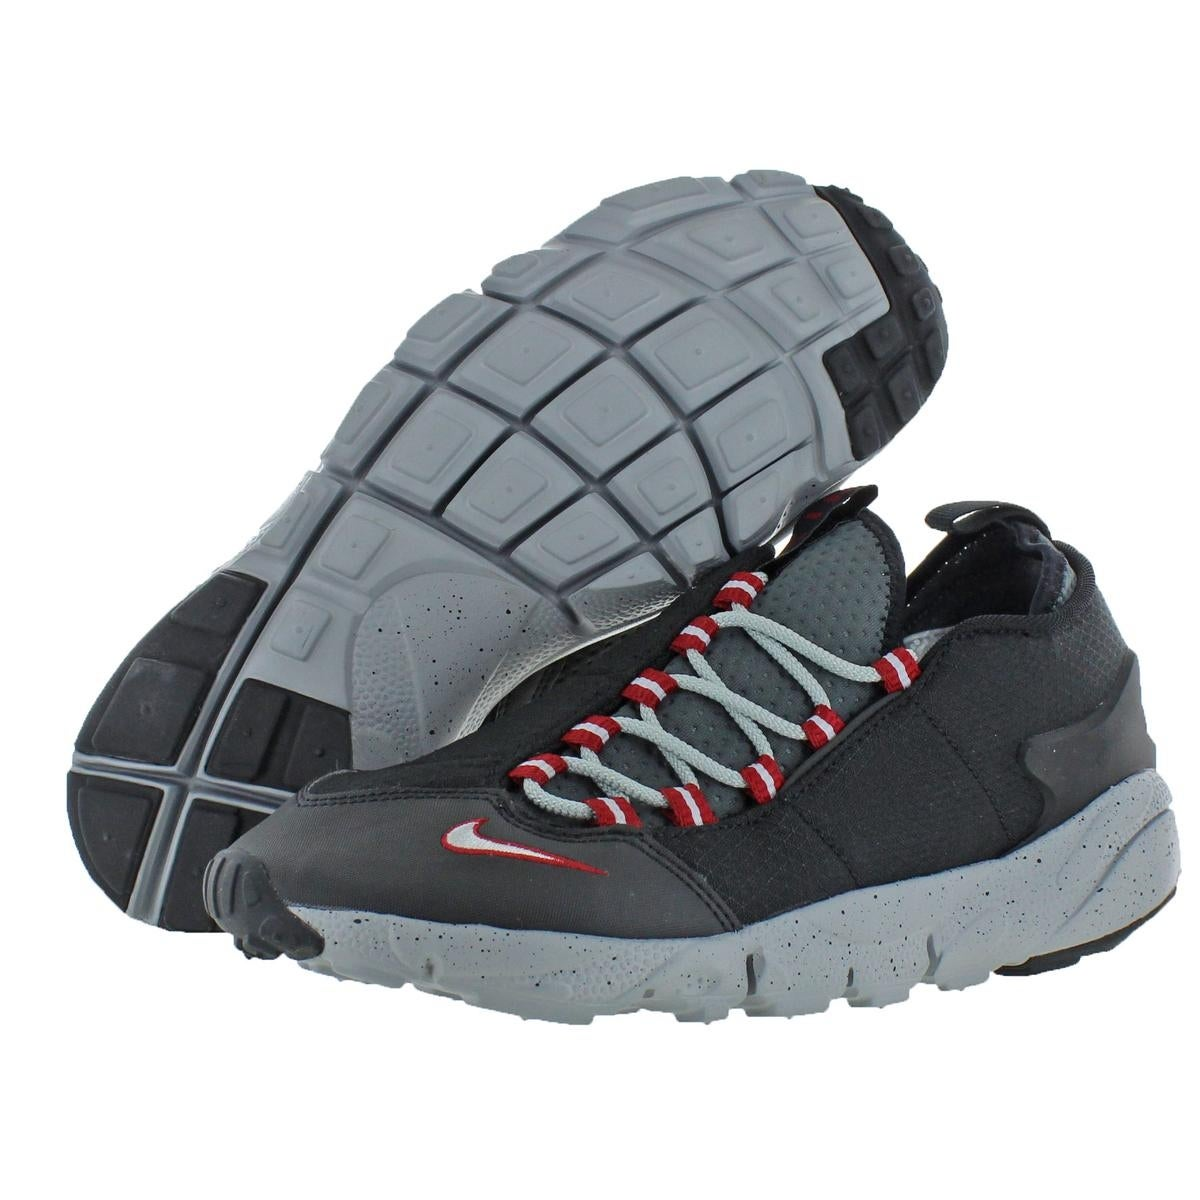 new styles 0d3c9 9d35b Shop Nike Mens Air Footscape NM Sneakers Low-Top Fashion - Free Shipping  Today - Overstock - 22320538